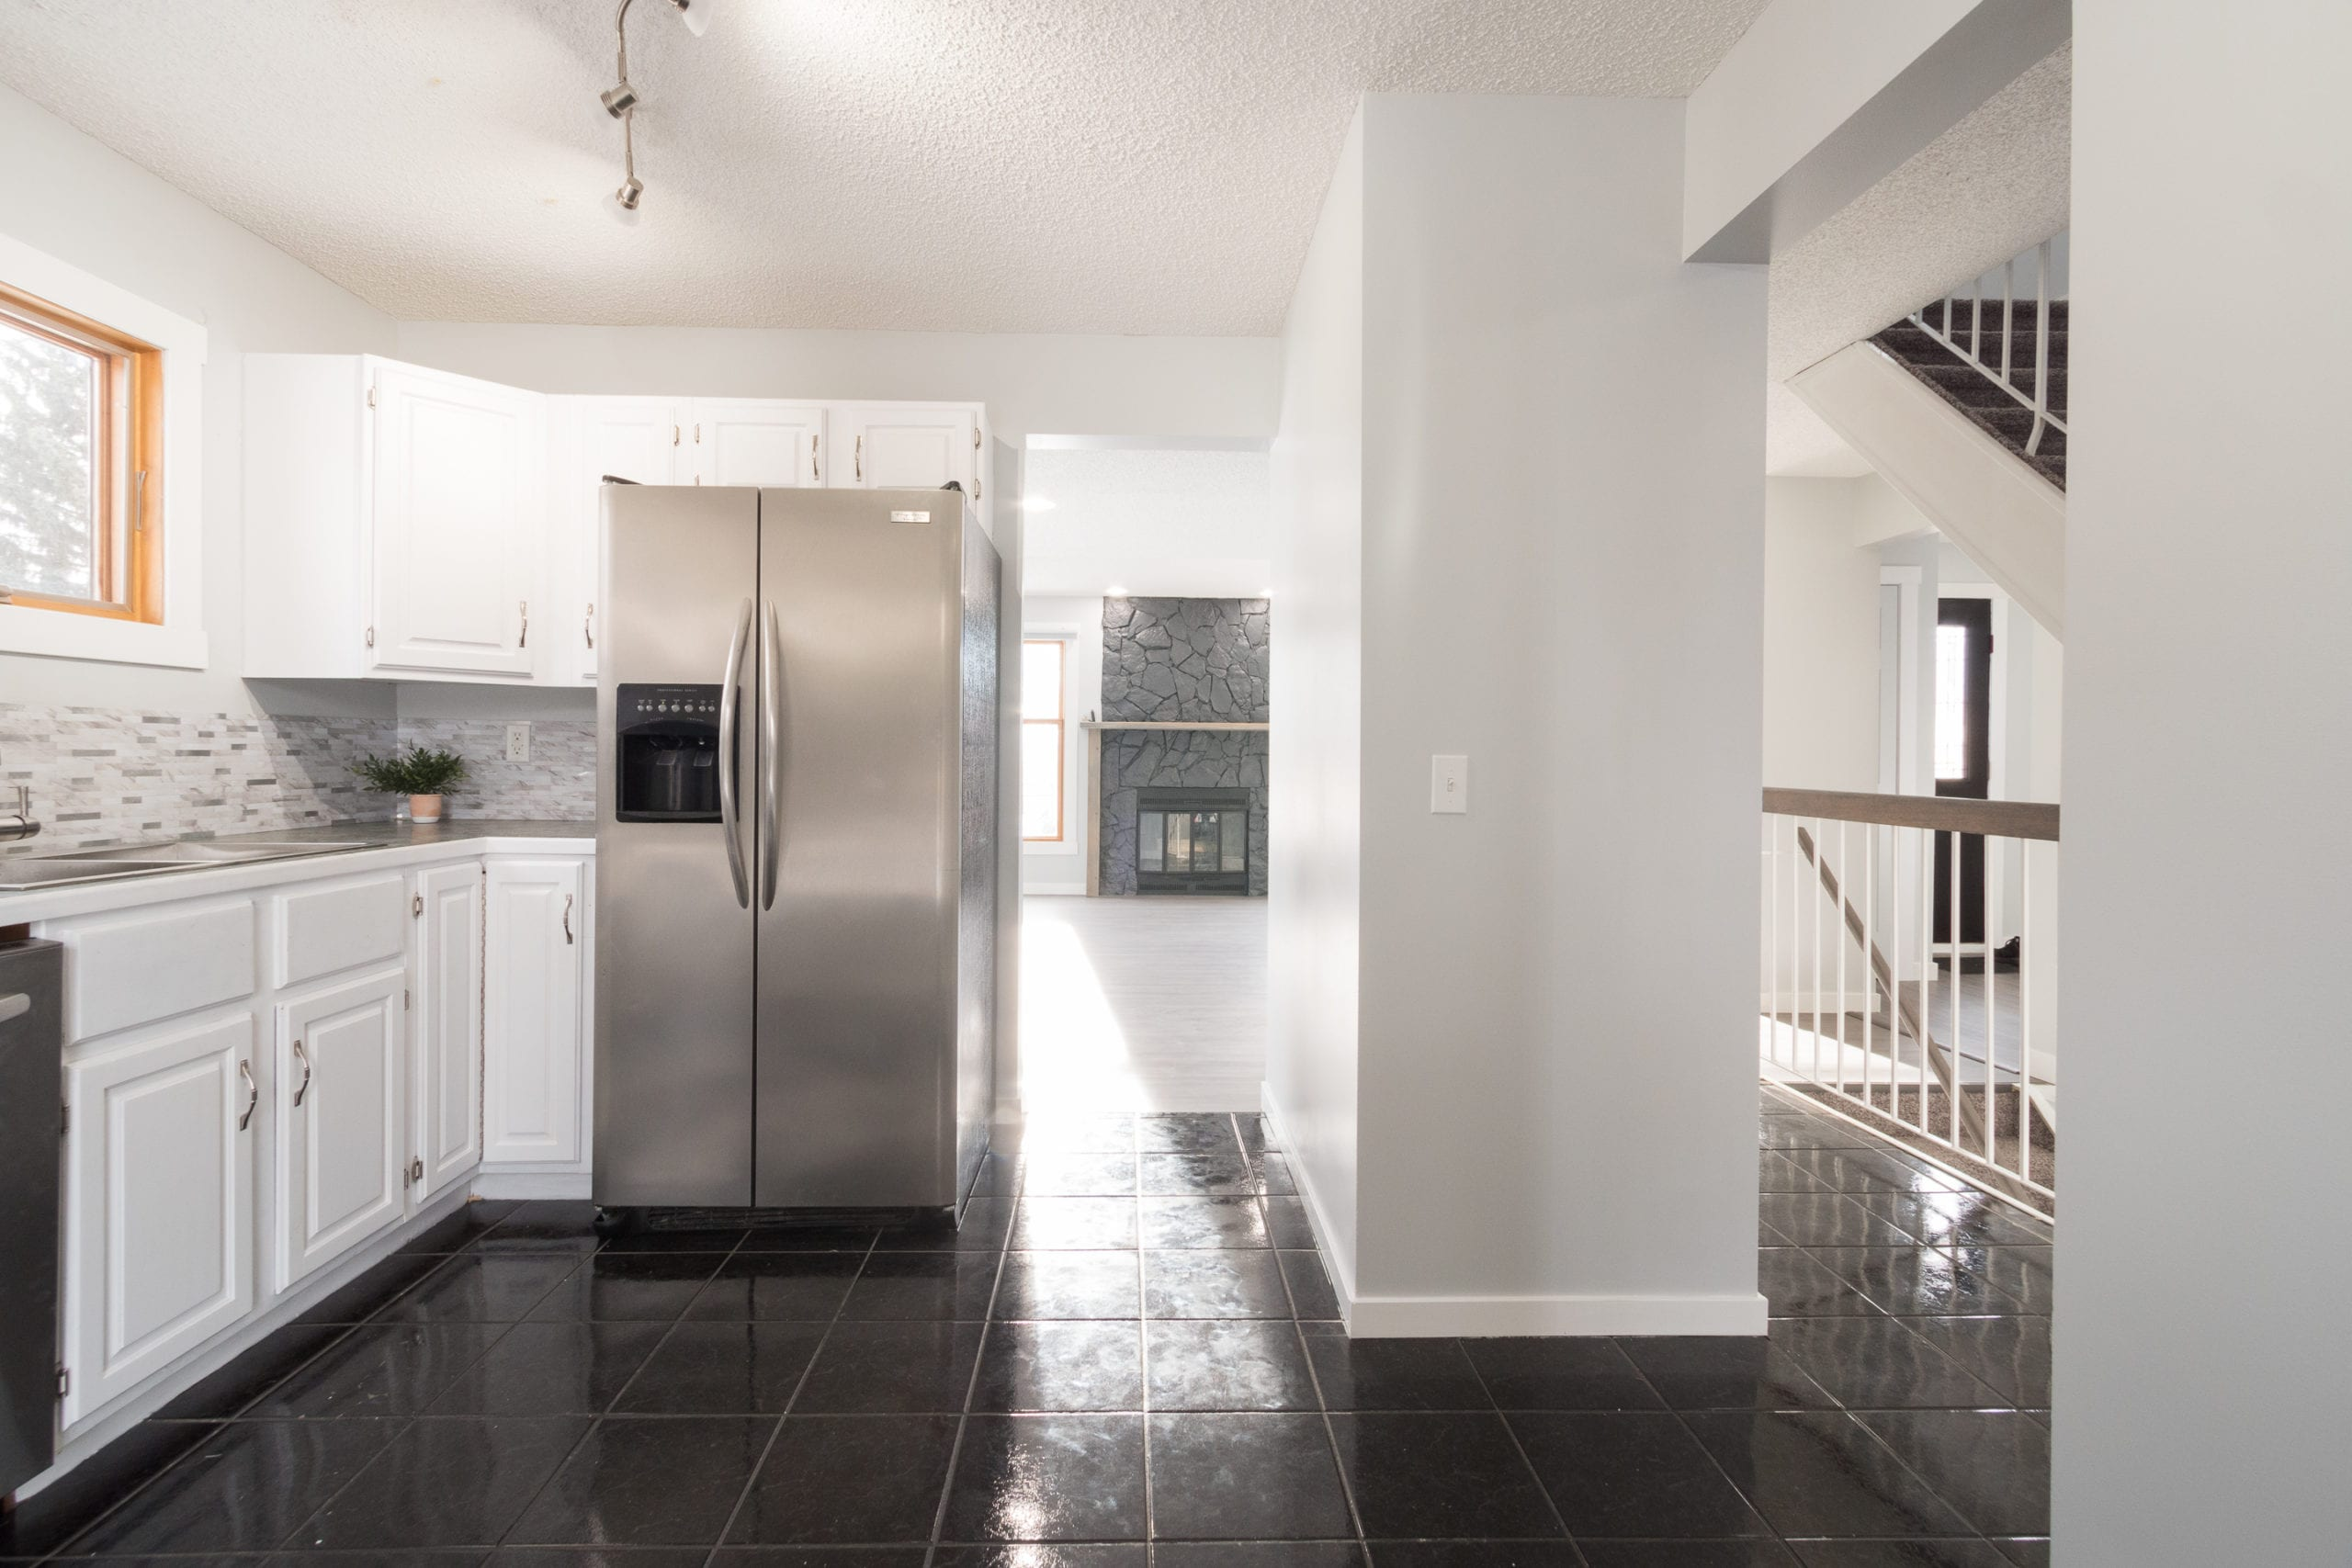 Hello Gorgeous - 4 Mountain Circle Airdrie AB - Tara Molina Real Estate (19 of 50)